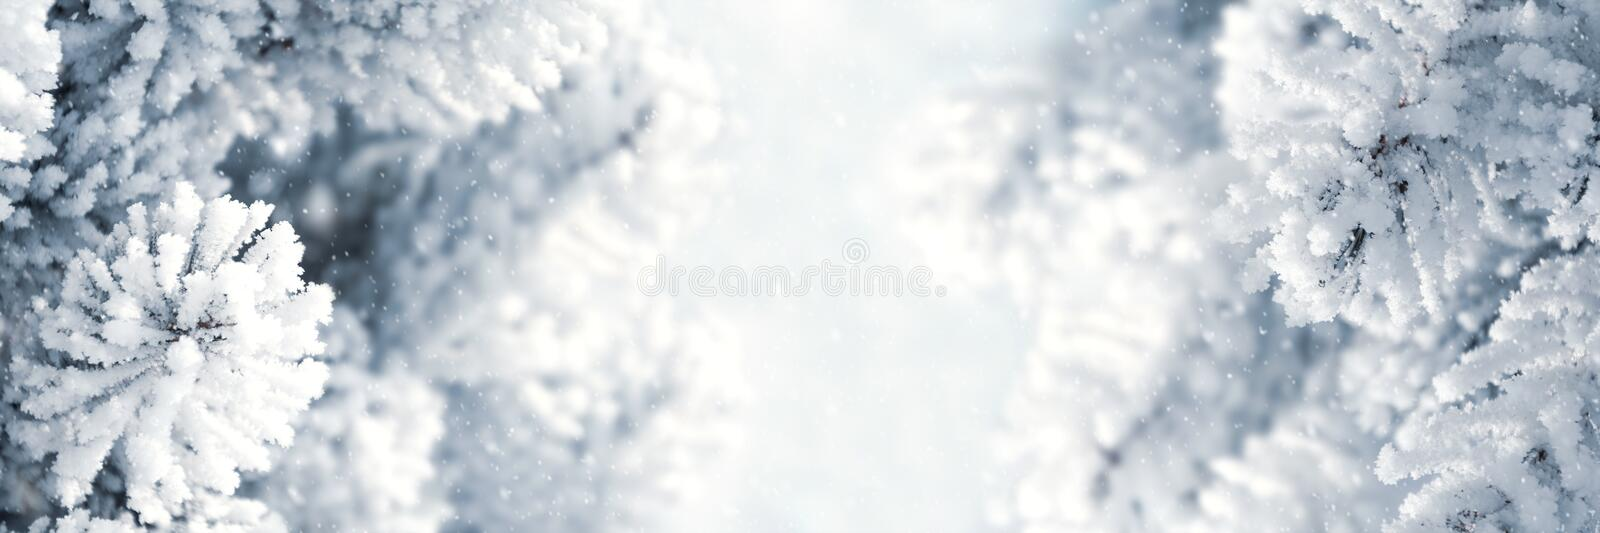 Banner 3:1. Winter Christmas scenic background. Snow landscape with spruce branches covered with snow. Sky and sunlight through royalty free stock image